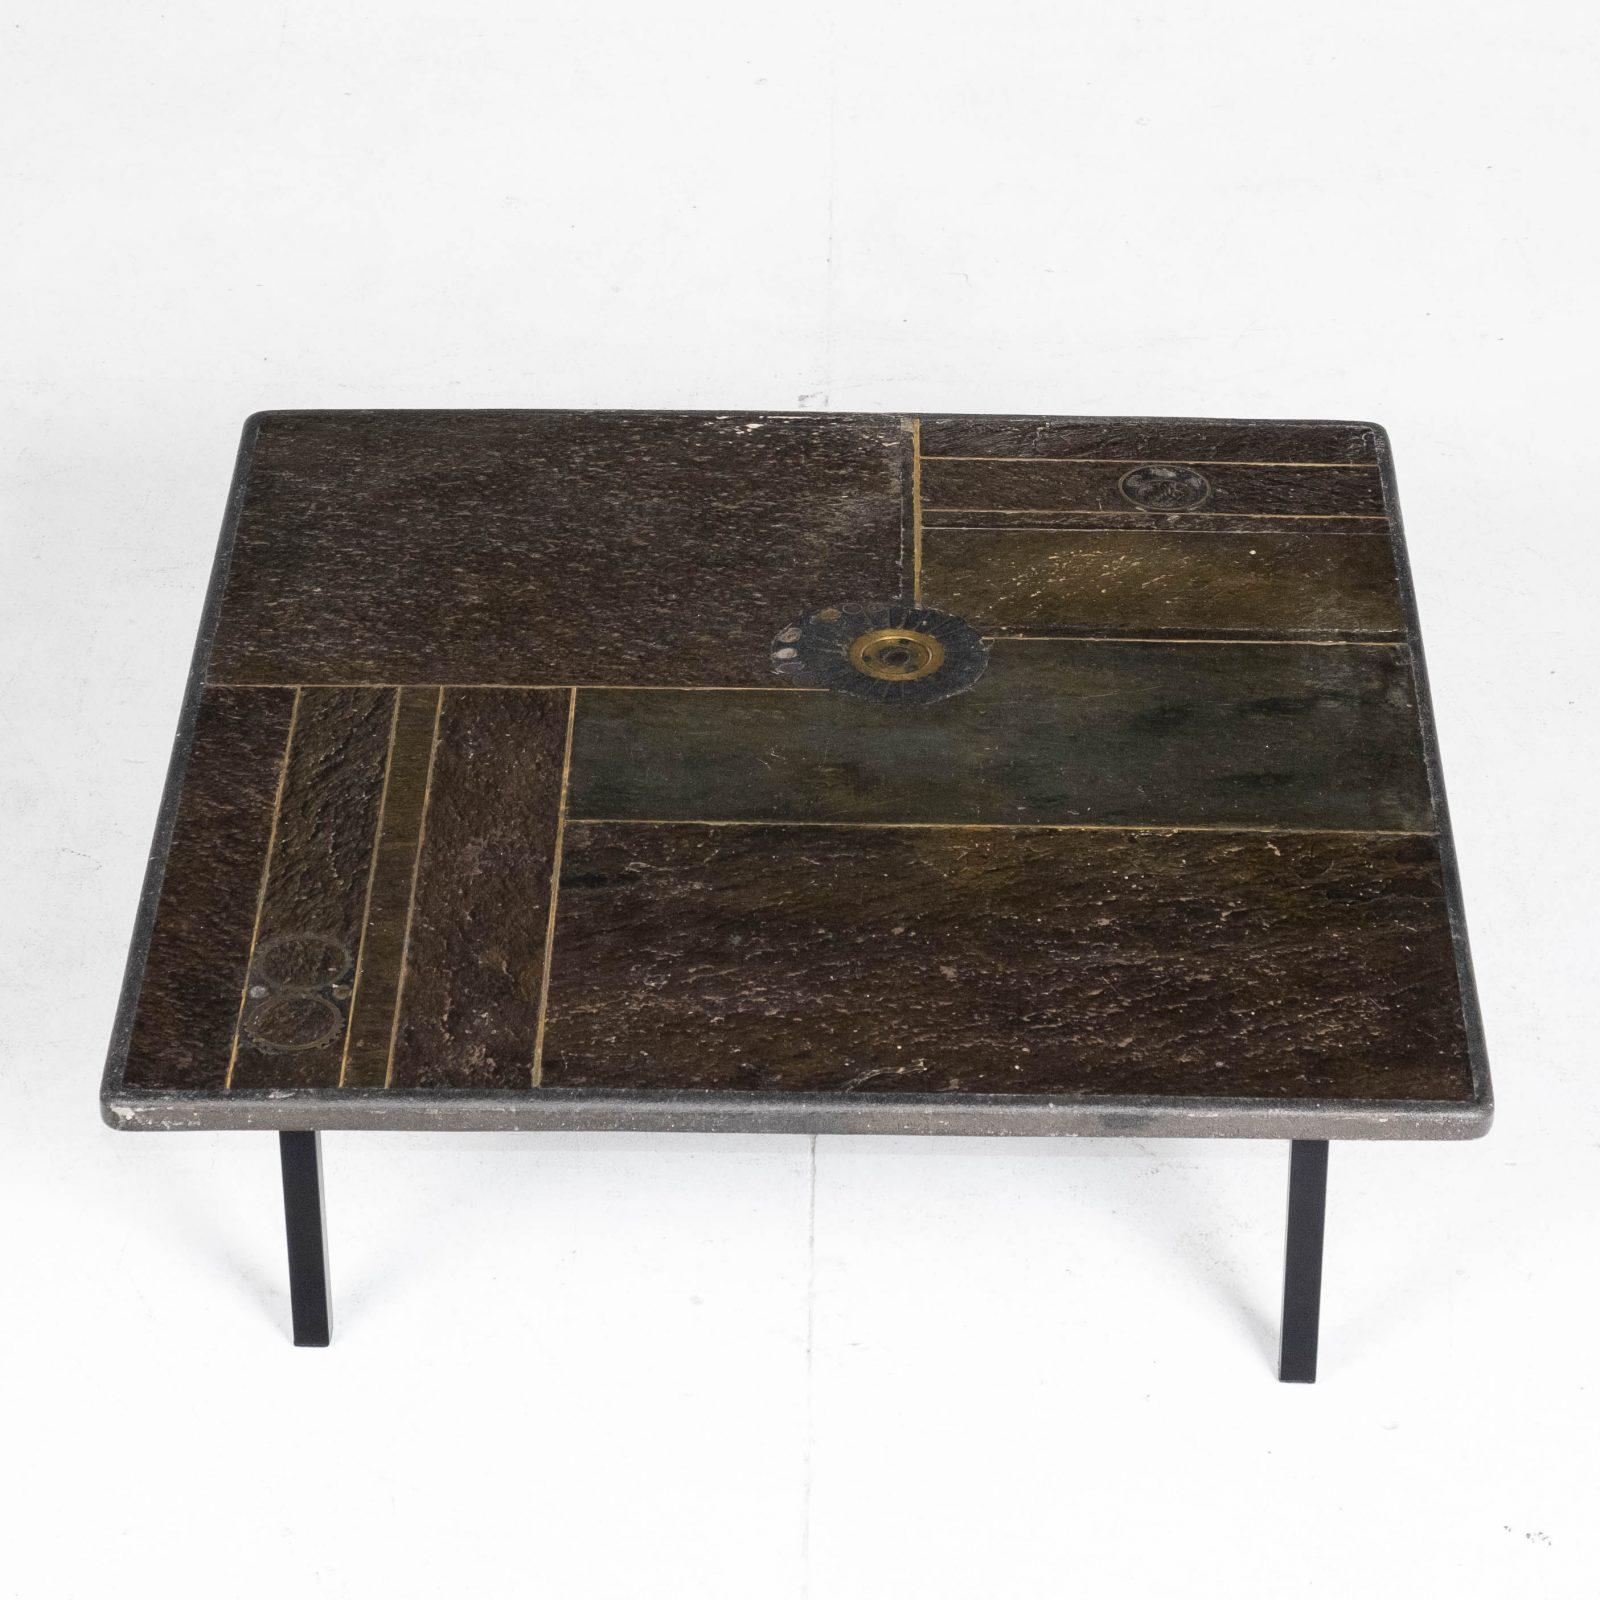 Square Coffee Table By Paul Kingma In Stone, Slate And Brass, 1970s, The Netherlands Hero 1